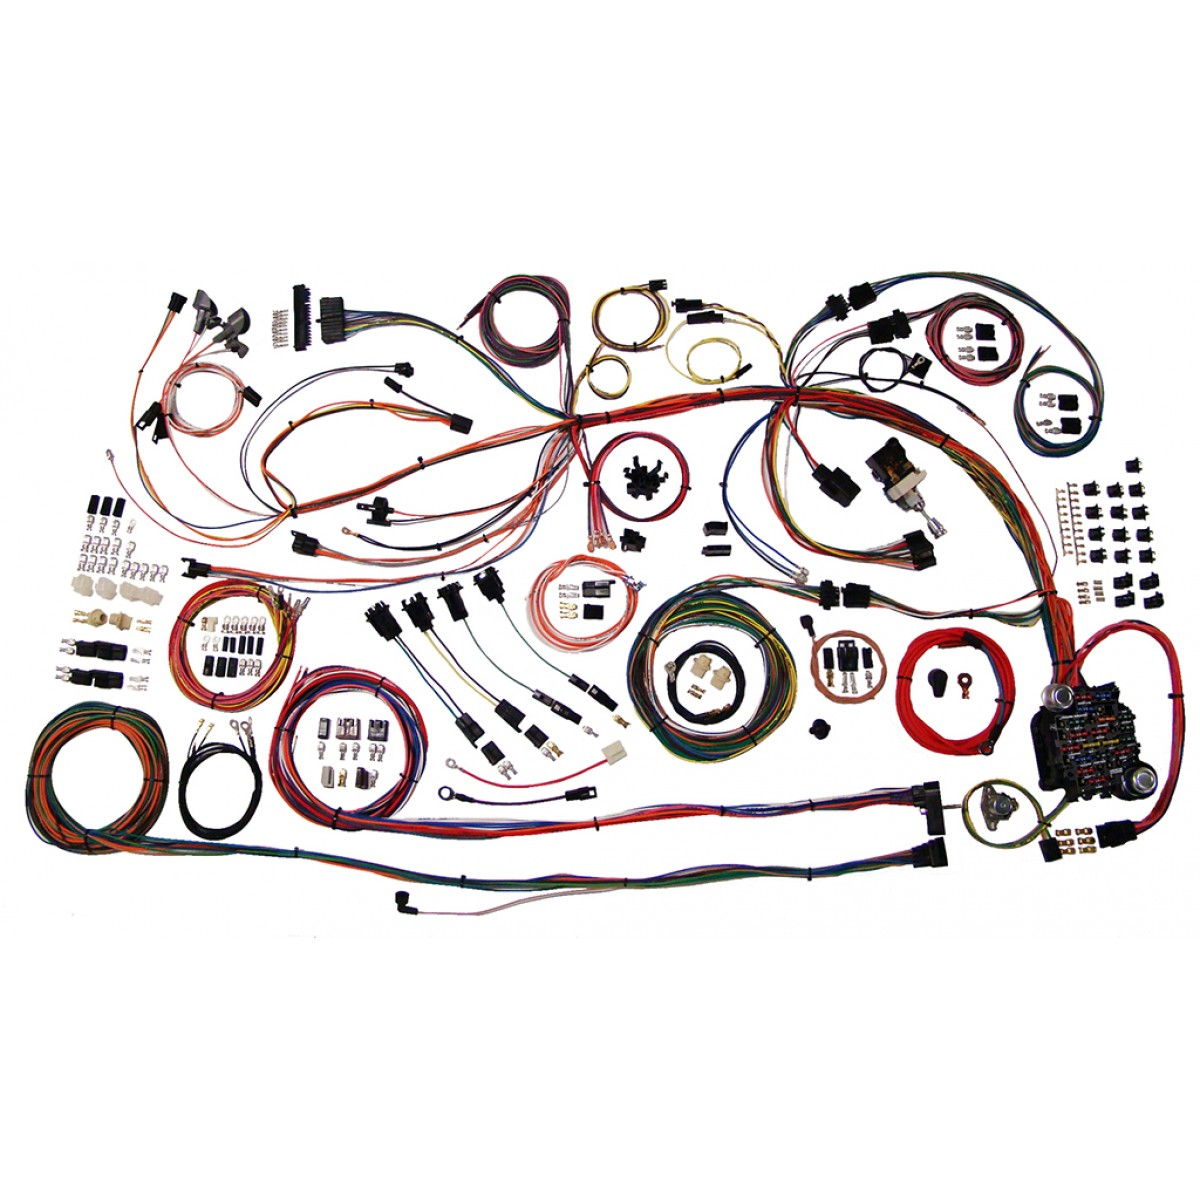 complete wiring harness kit 1968 1969 chevelle part 510158 68 69 chevelle full wire harness 510158_2 1968 1969 el camino wiring harness kit part 510158 1968 1969 1968 firebird engine wiring harness at eliteediting.co